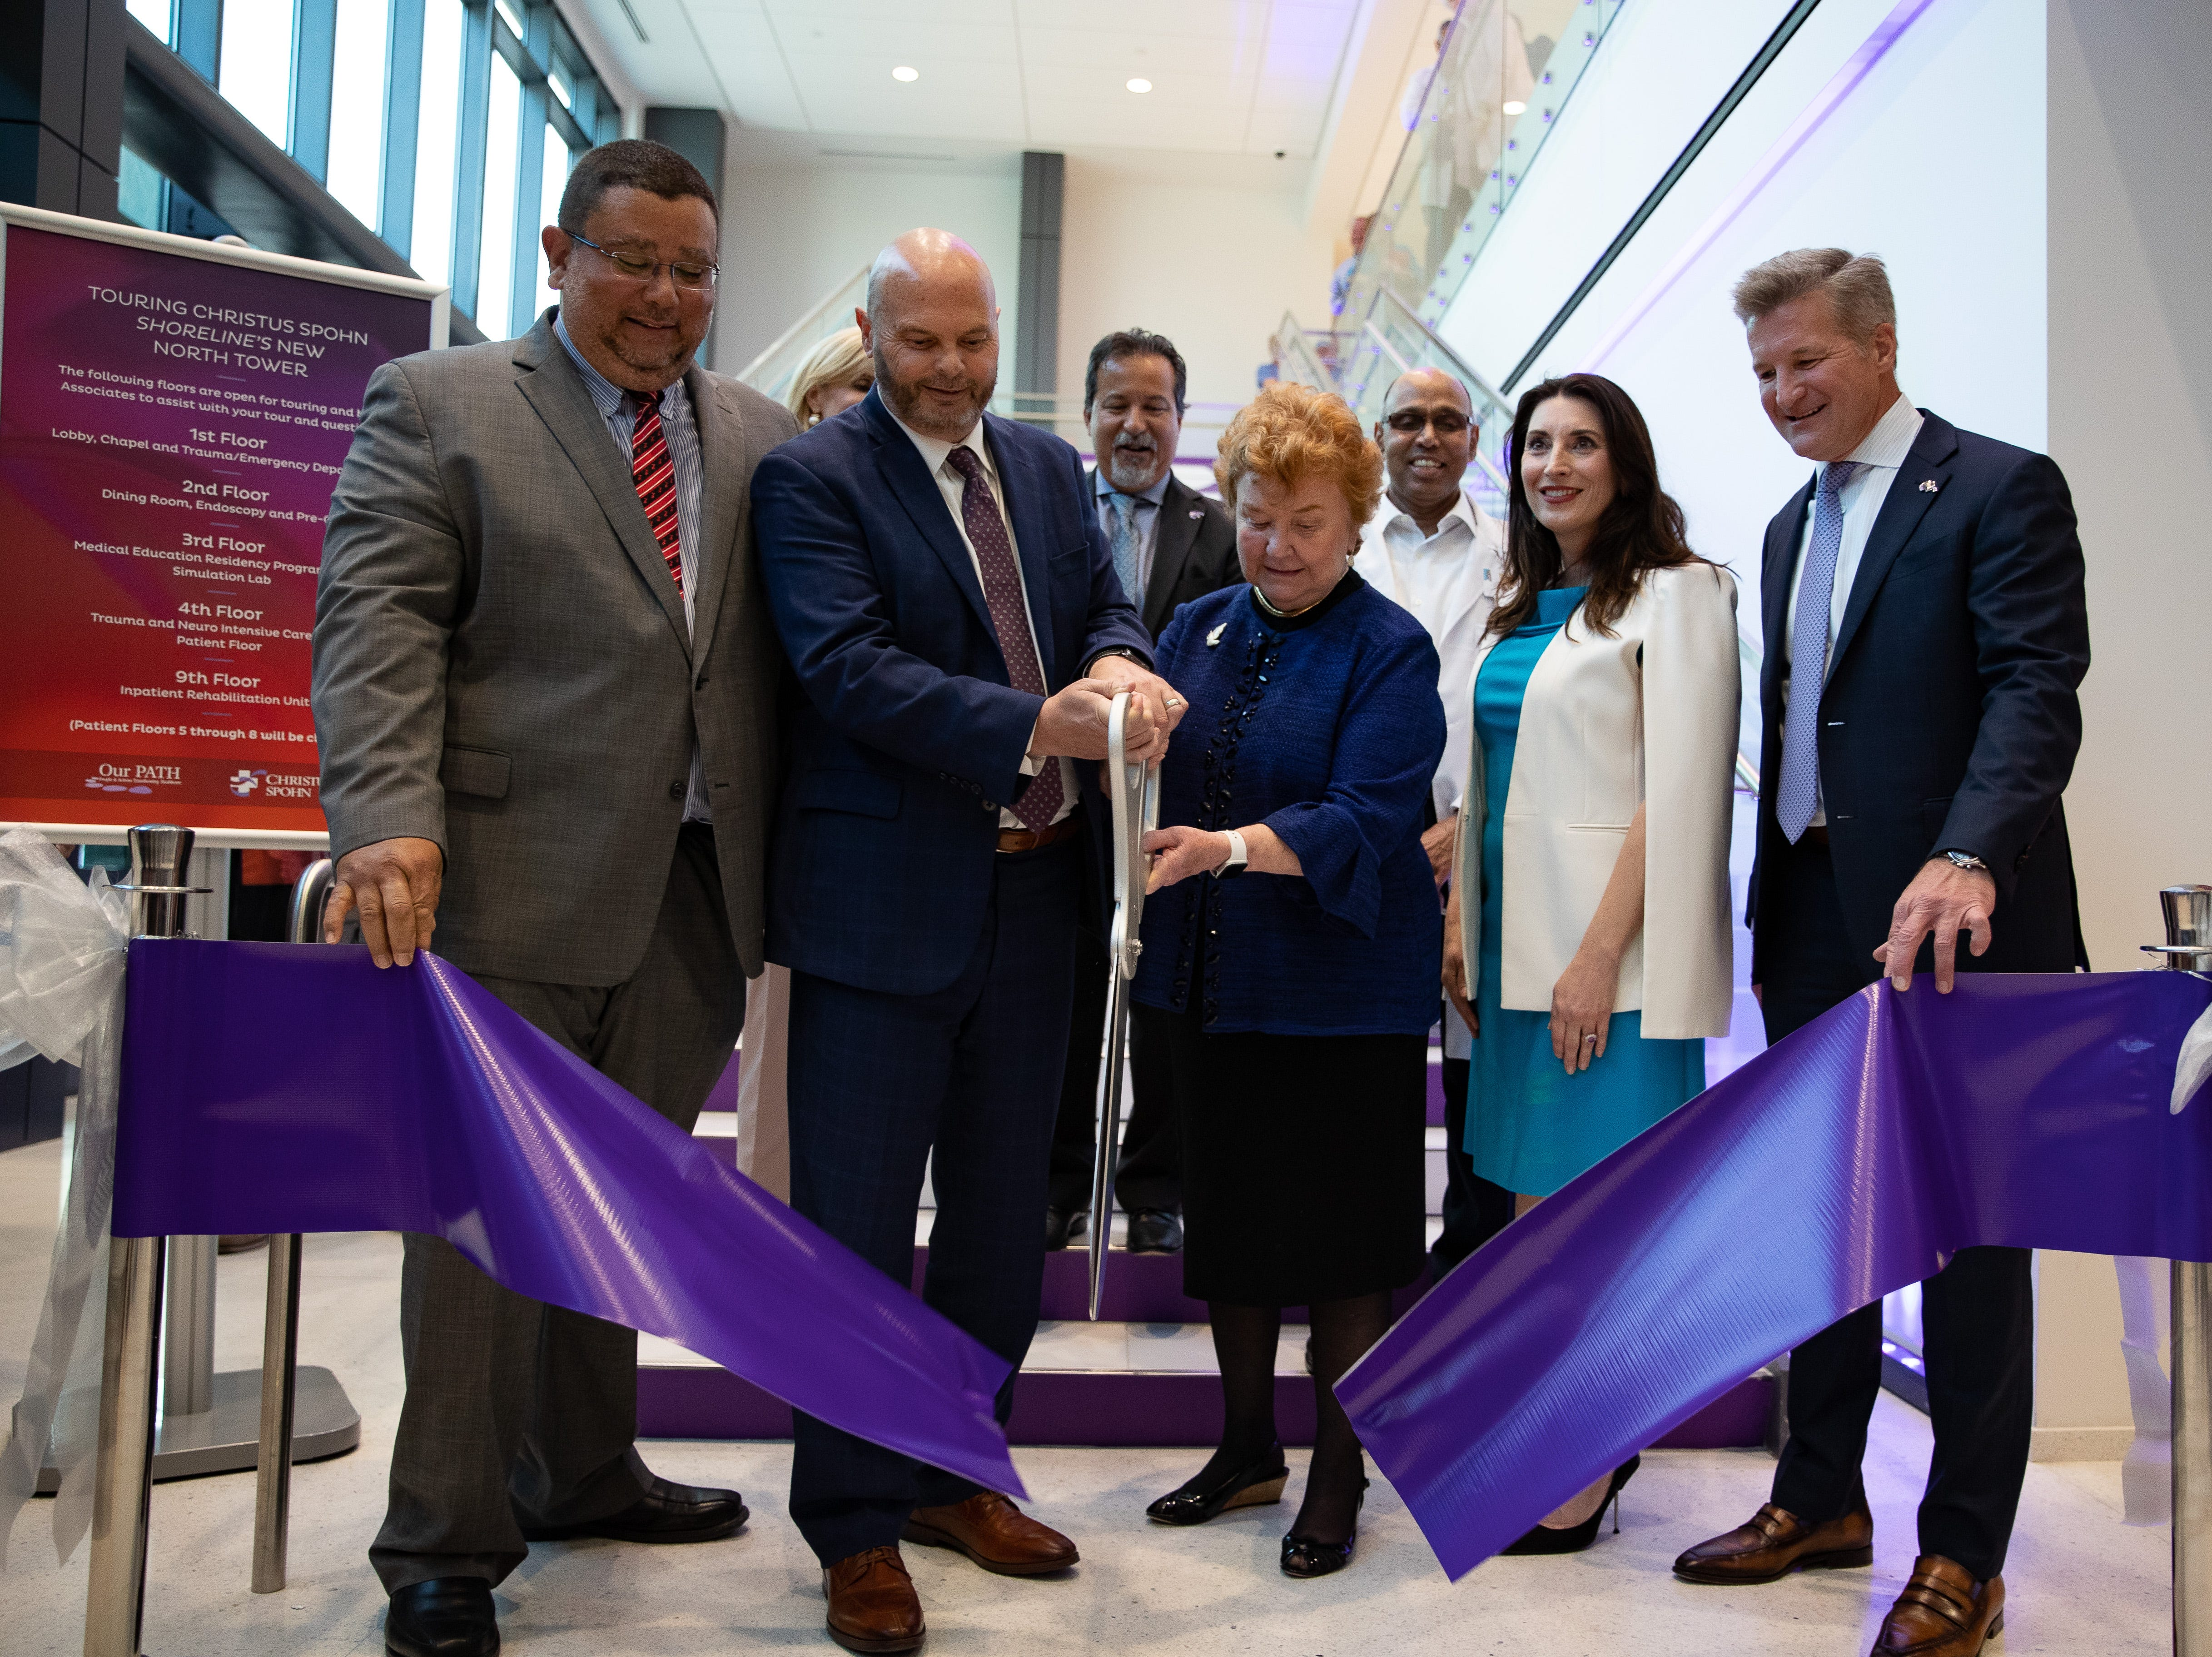 CHRISTUS Spohn Heath System hosts the opening of the new $335 million North Tower at Shoreline Hospital on Thursday, March 28, 2019.